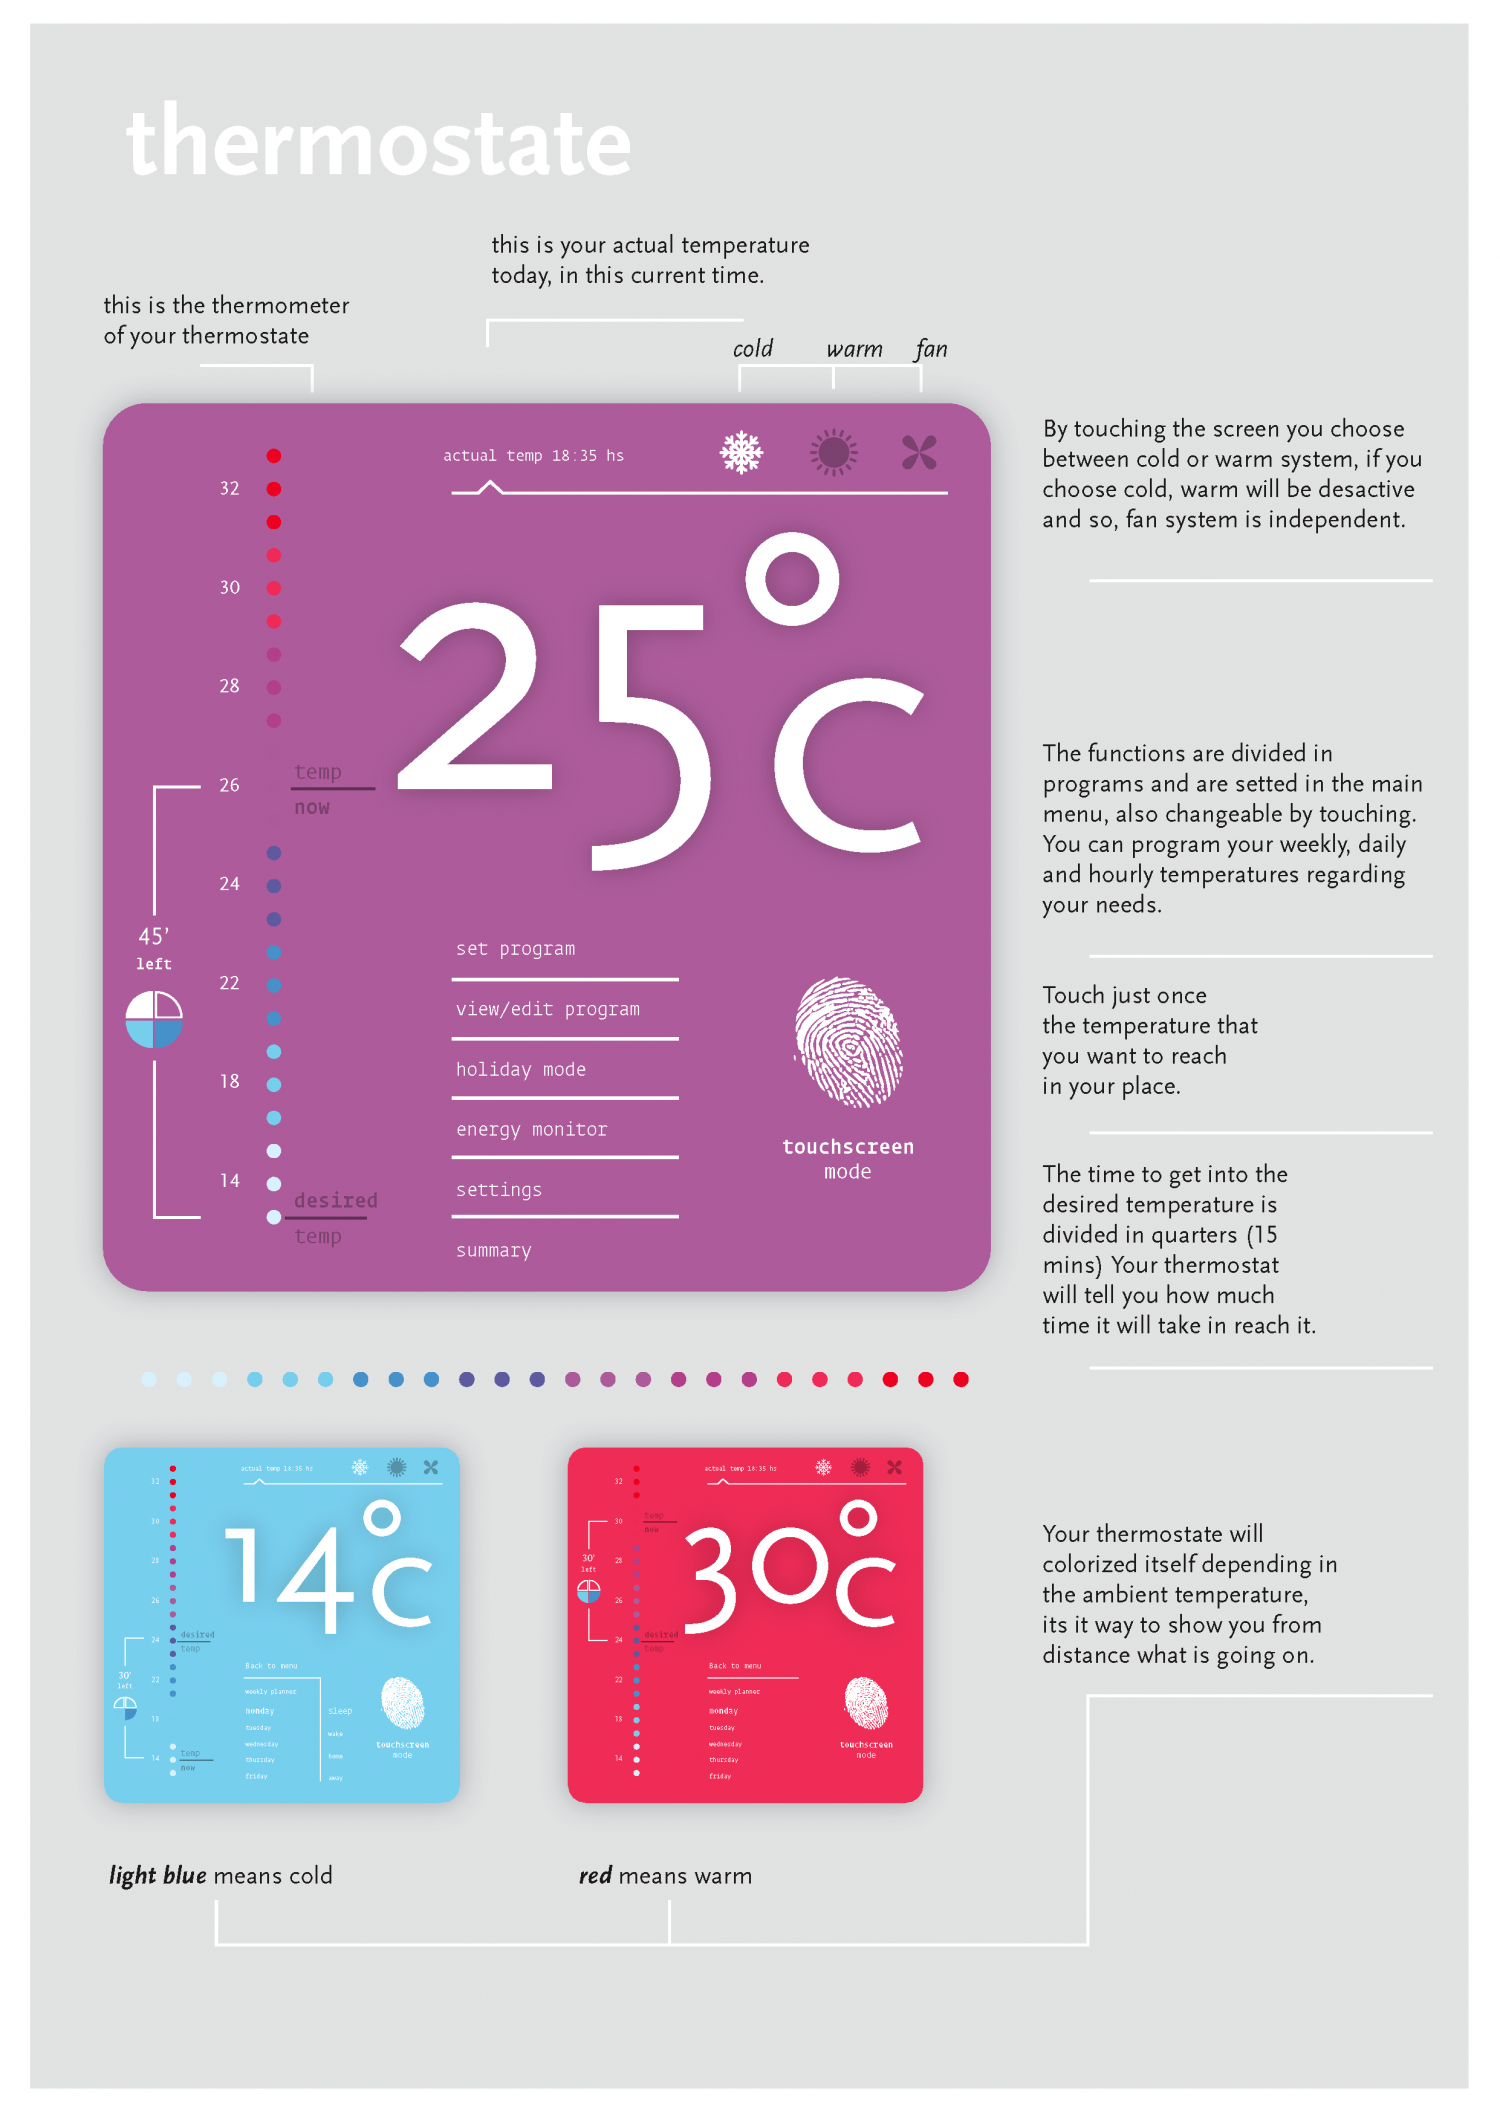 Thermostate Infographic